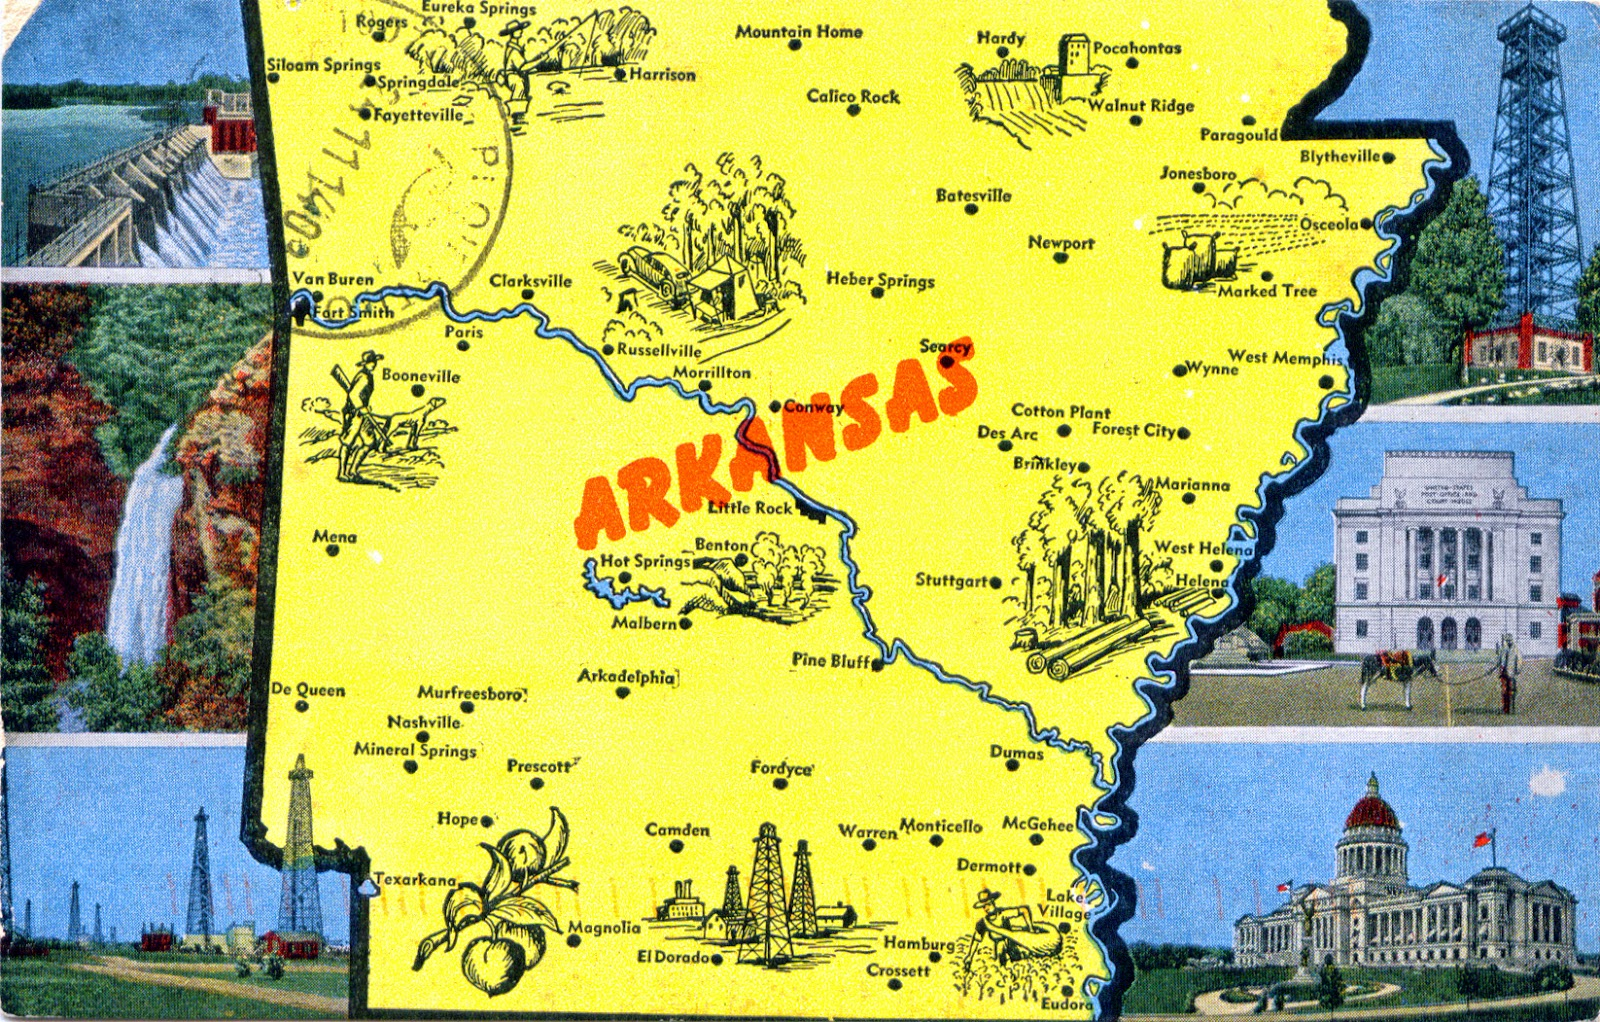 WORLD COME TO MY HOME UNITED STATES Arkansas - Native american tribes arkansas map